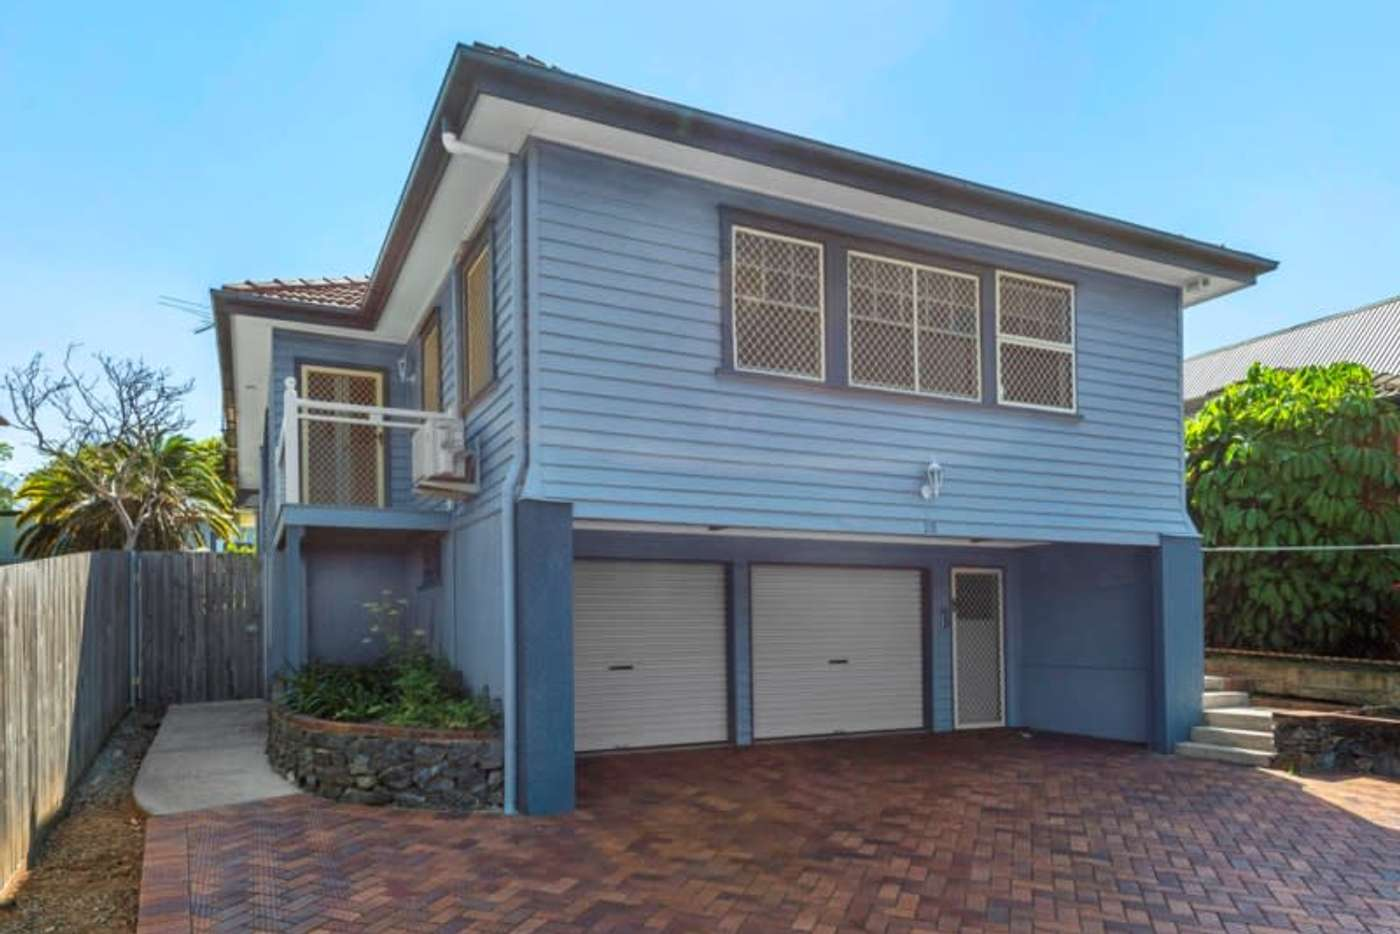 Main view of Homely house listing, 28 Enoggera Road, Newmarket QLD 4051